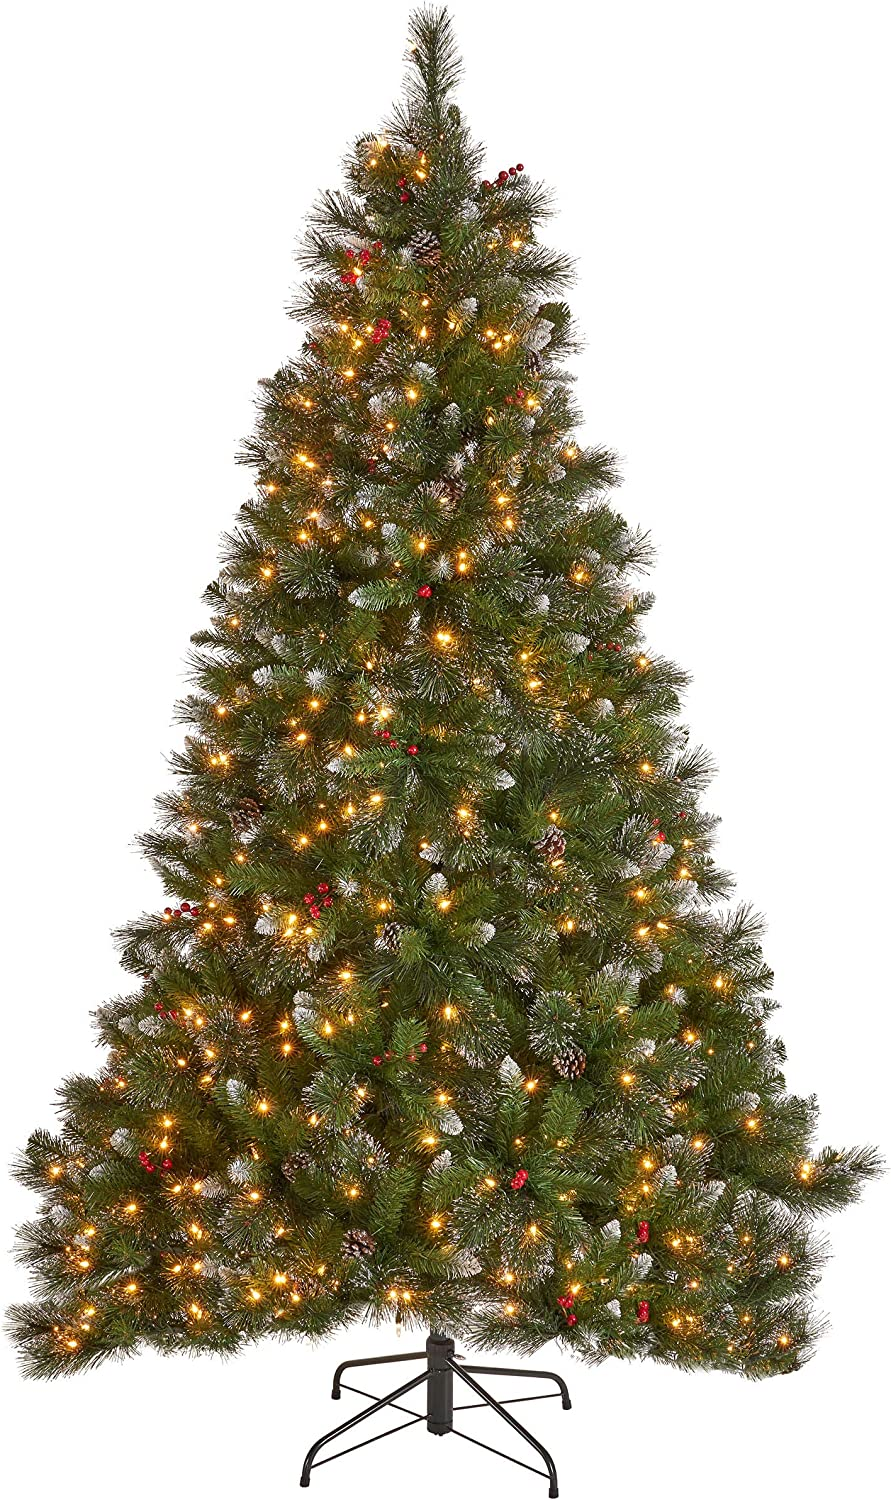 7-foot Mixed Spruce Pre-Lit Clear Light Hinged Artificial Christmas Tree with Glitter Branches, Red Berries, and Pinecones